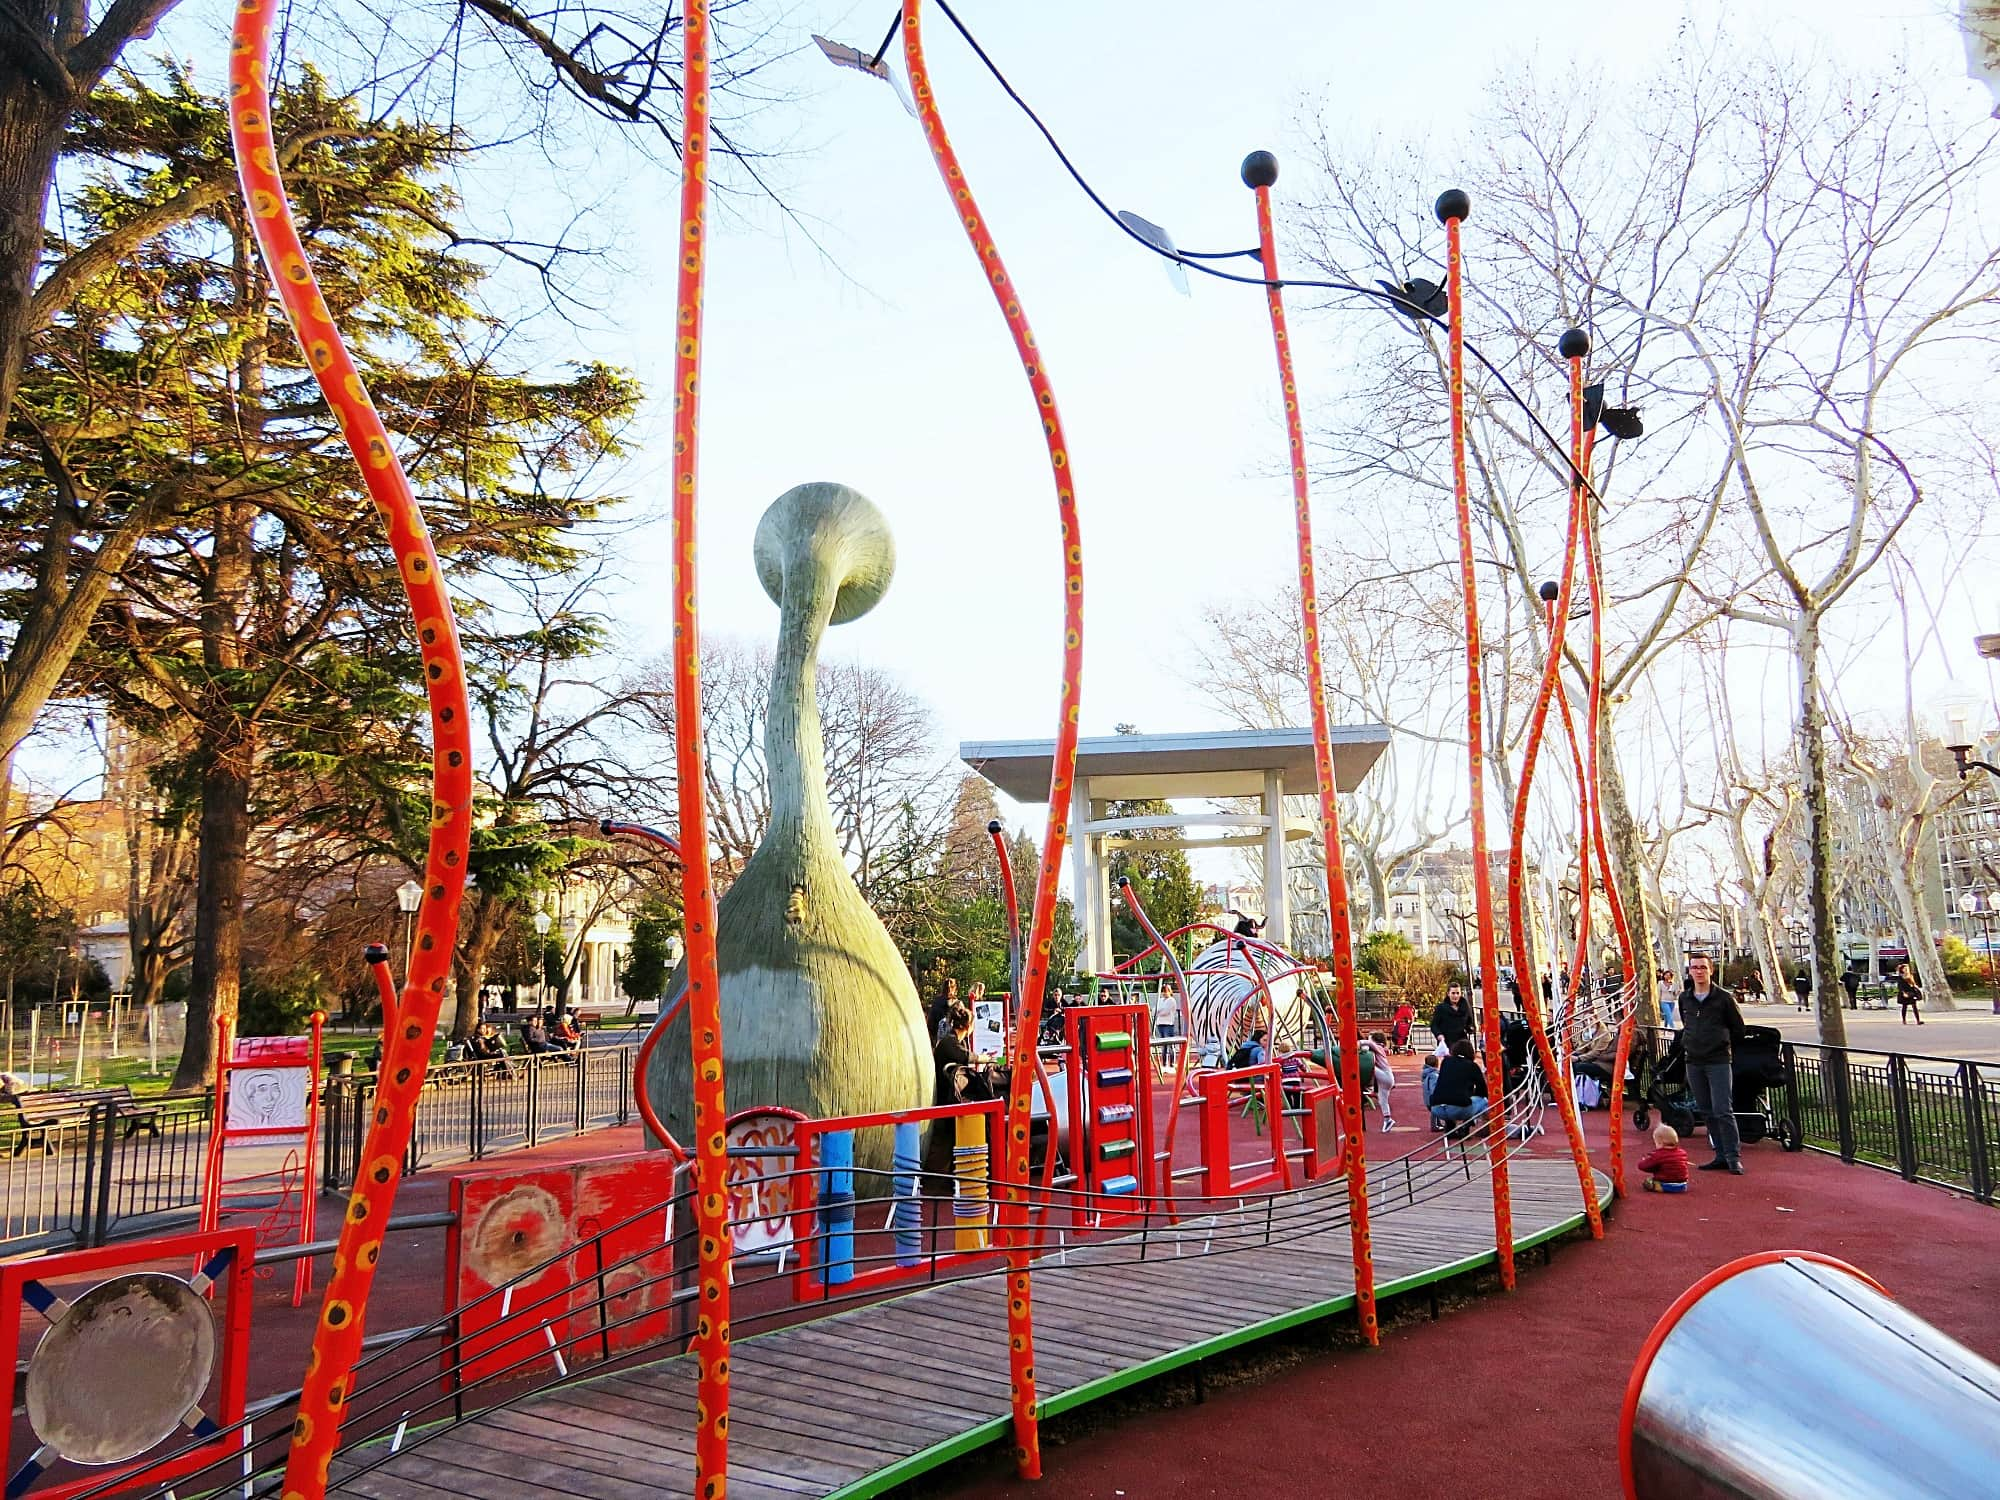 Jardin Champs de Mars is a playground with a Dr. Seuss-like feel in Montpellier, France